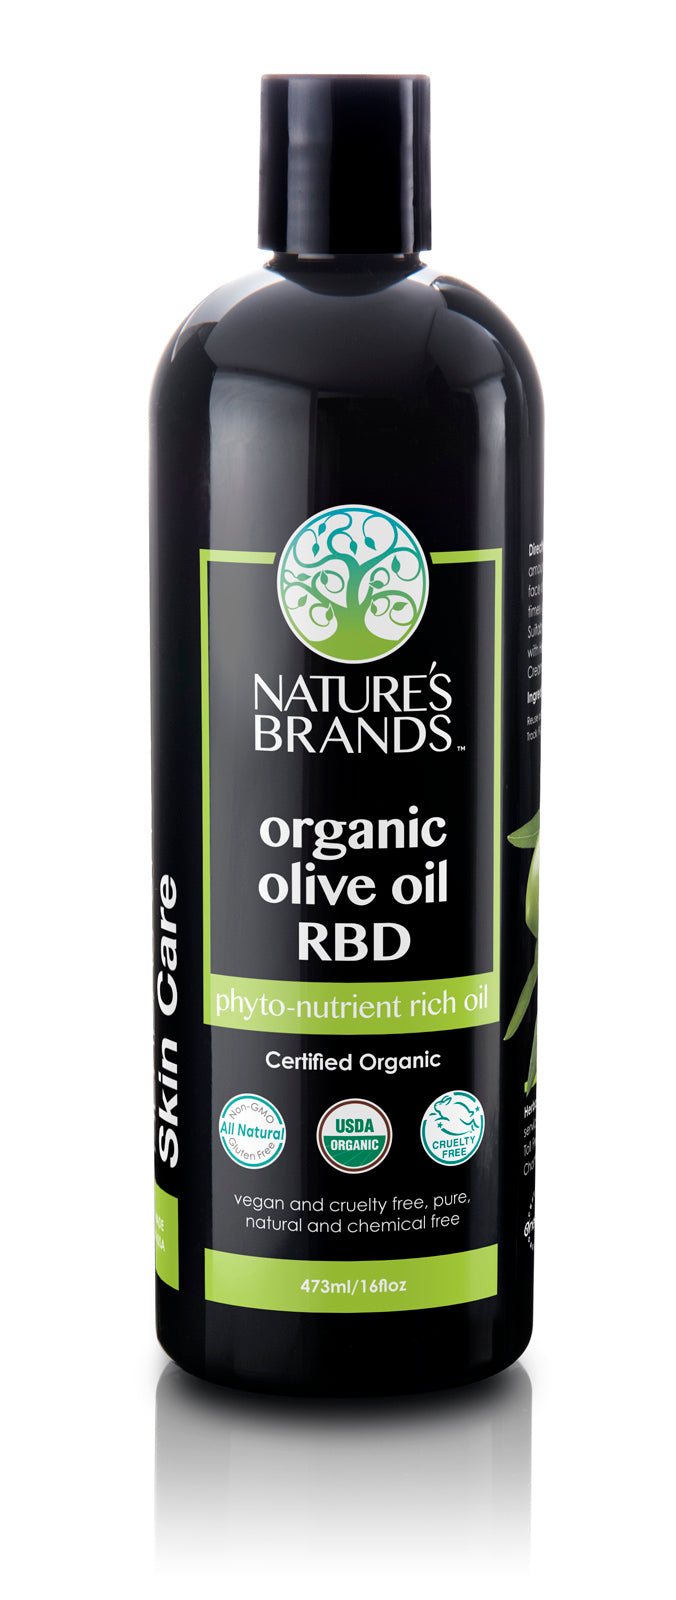 Herbal Choice Mari Organic Olive Oil - Herbal Choice Mari Organic Olive Oil - Herbal Choice Mari Organic Olive Oil